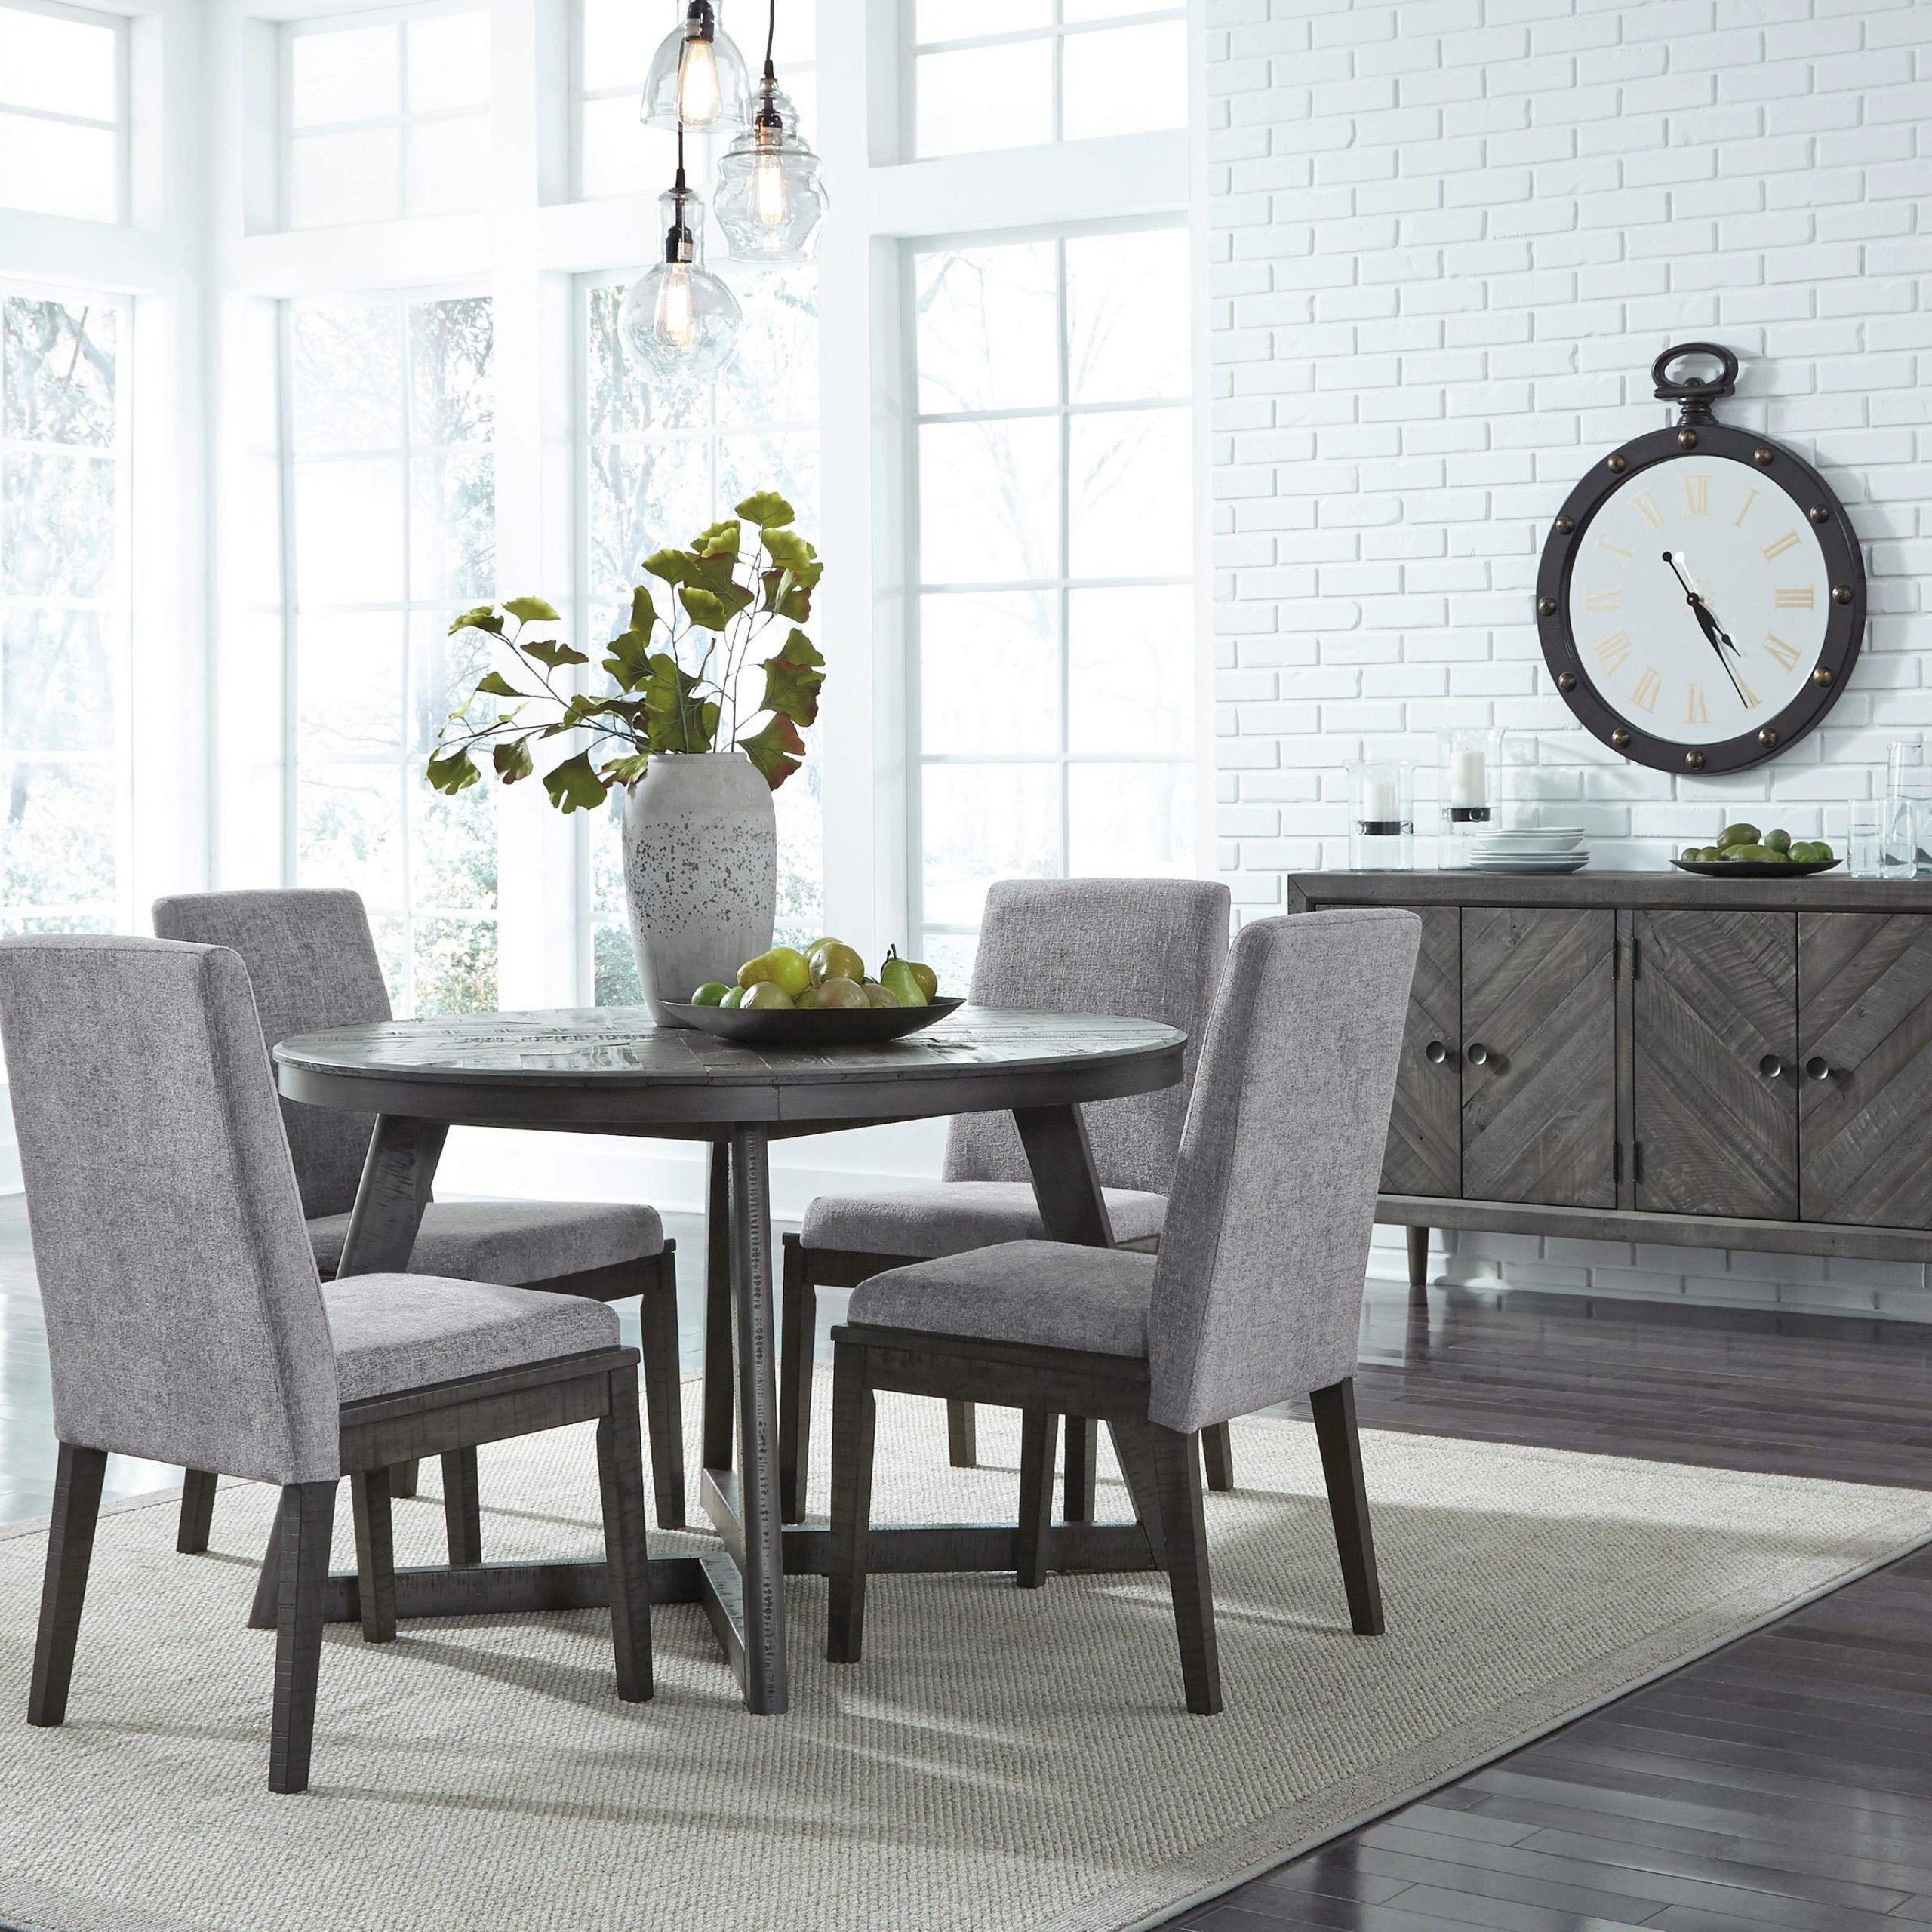 Ashley Flaybern D595 Dining Room Set 6Pcs In Brown (D595 Intended For Most Recent Eleni 35'' Dining Tables (View 4 of 15)